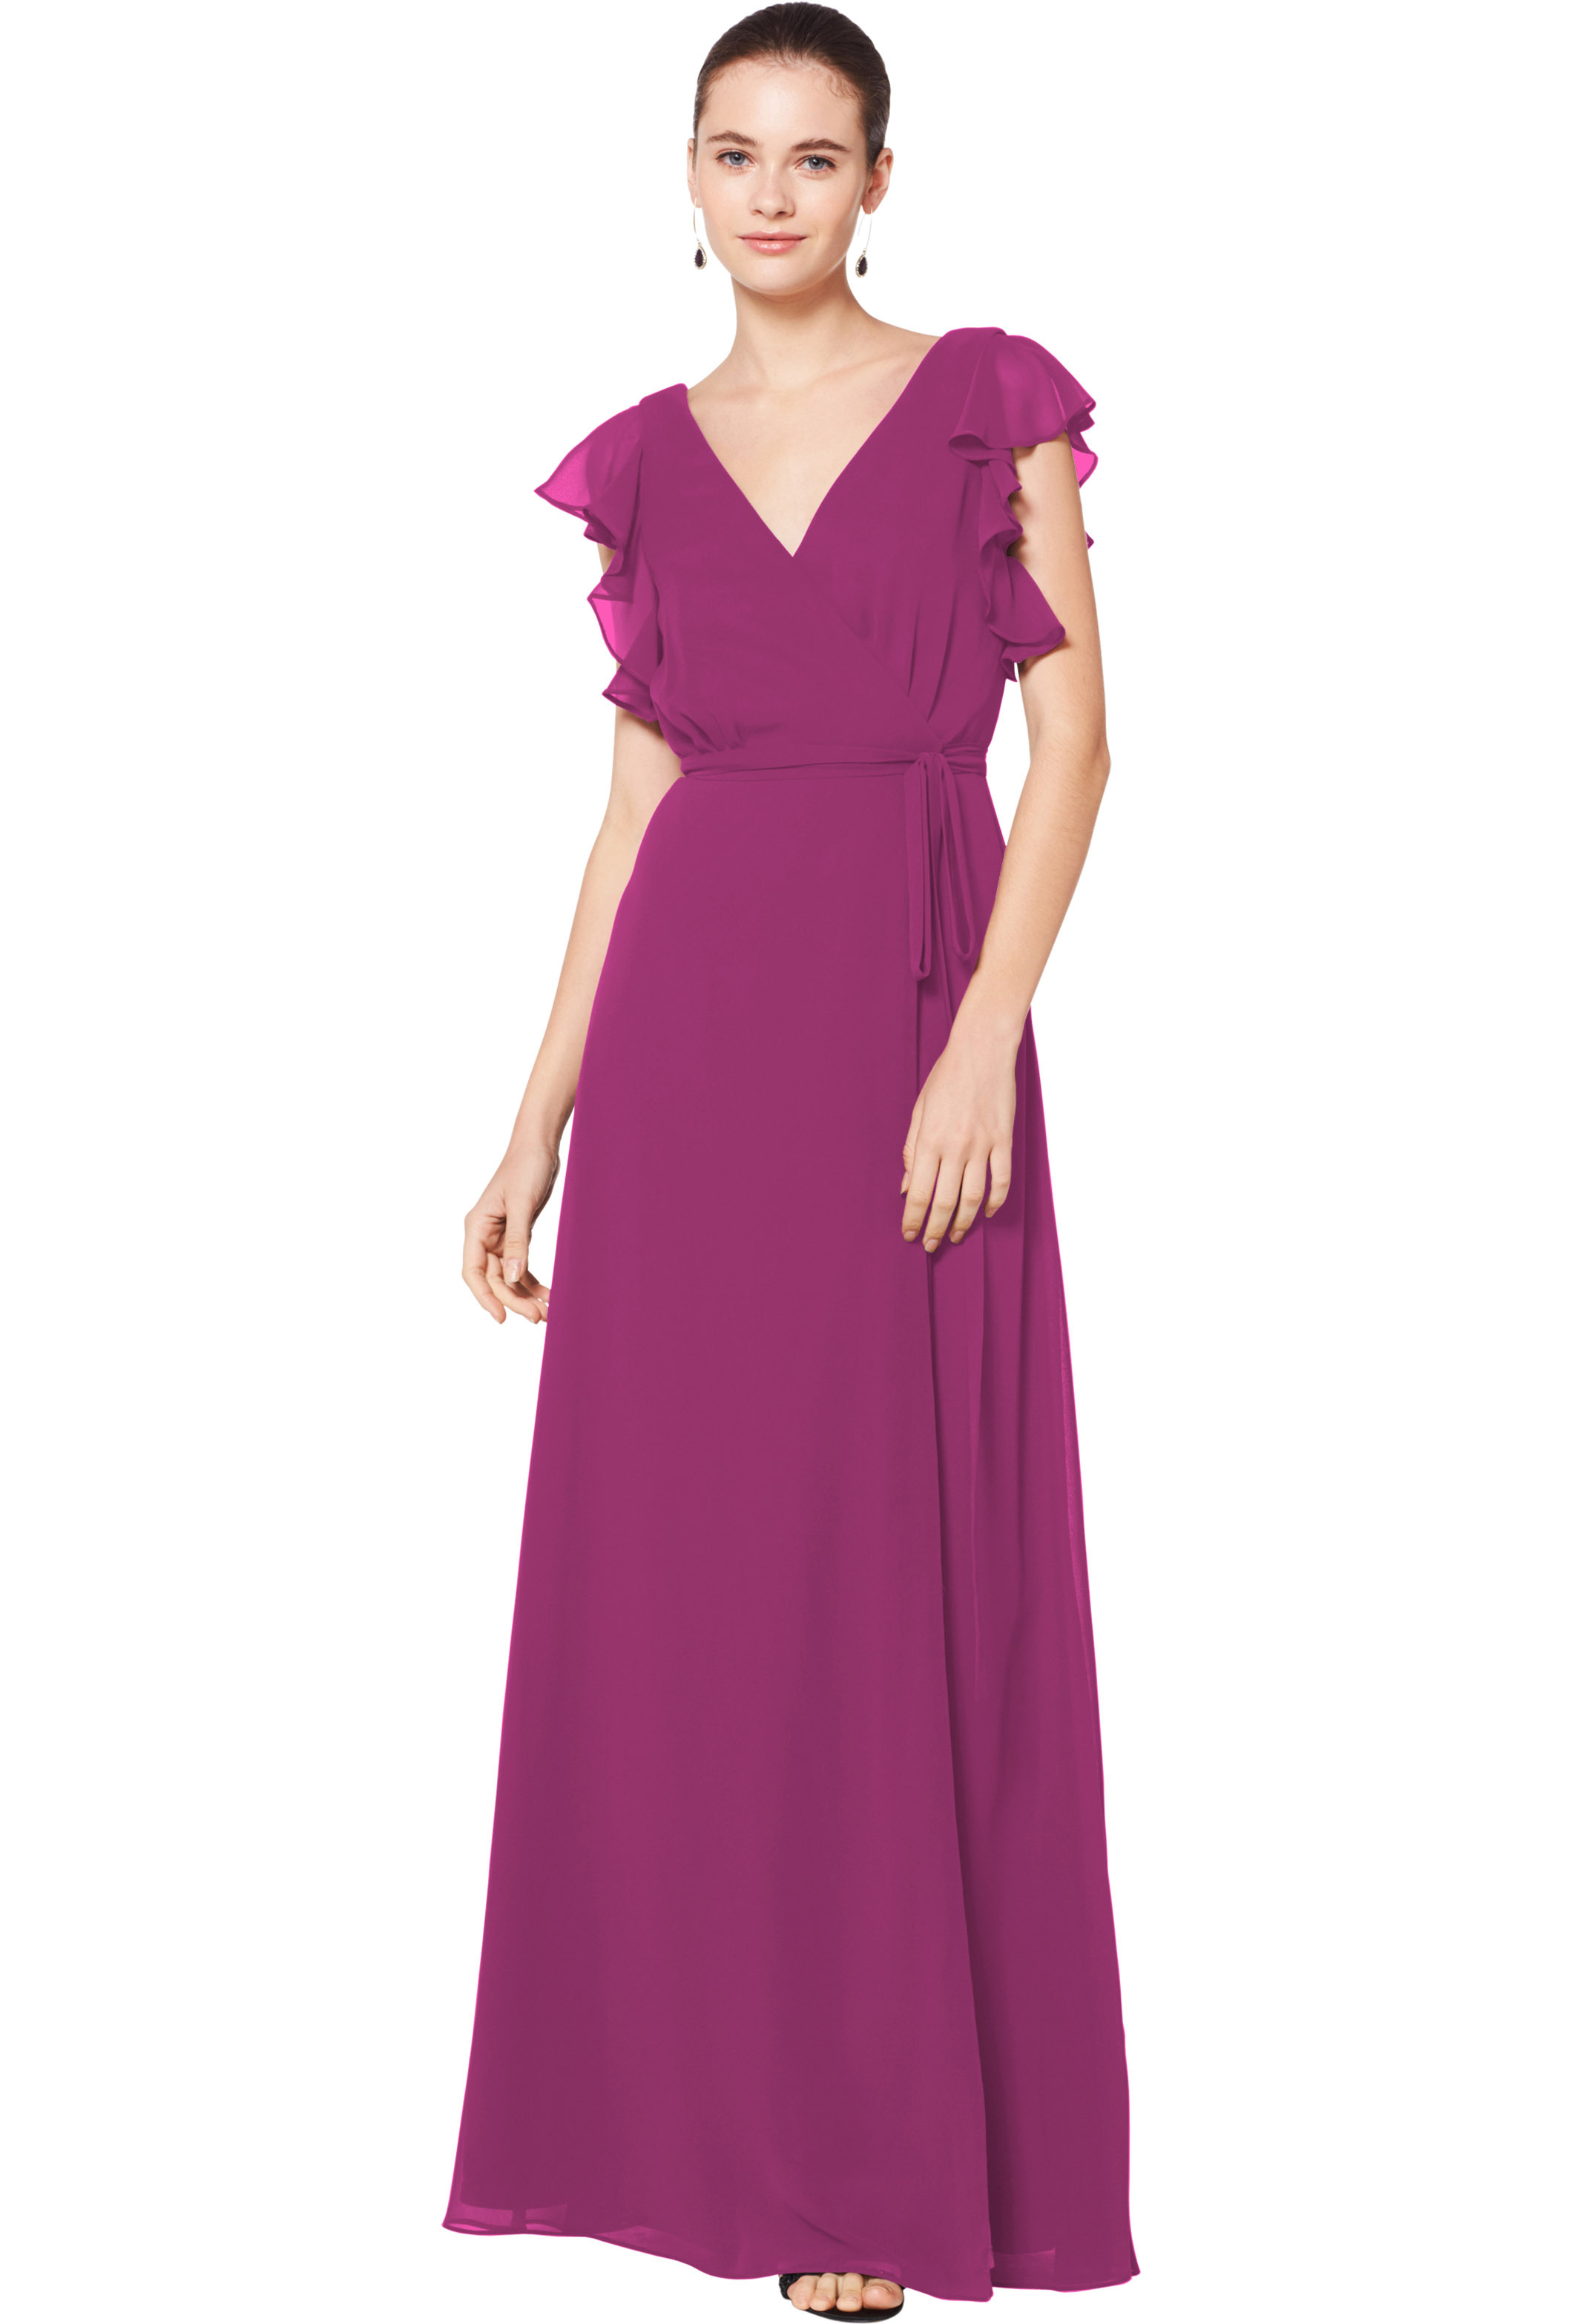 Bill Levkoff SANGRIA Chiffon Sleeveless A-line gown, $180.00 Front